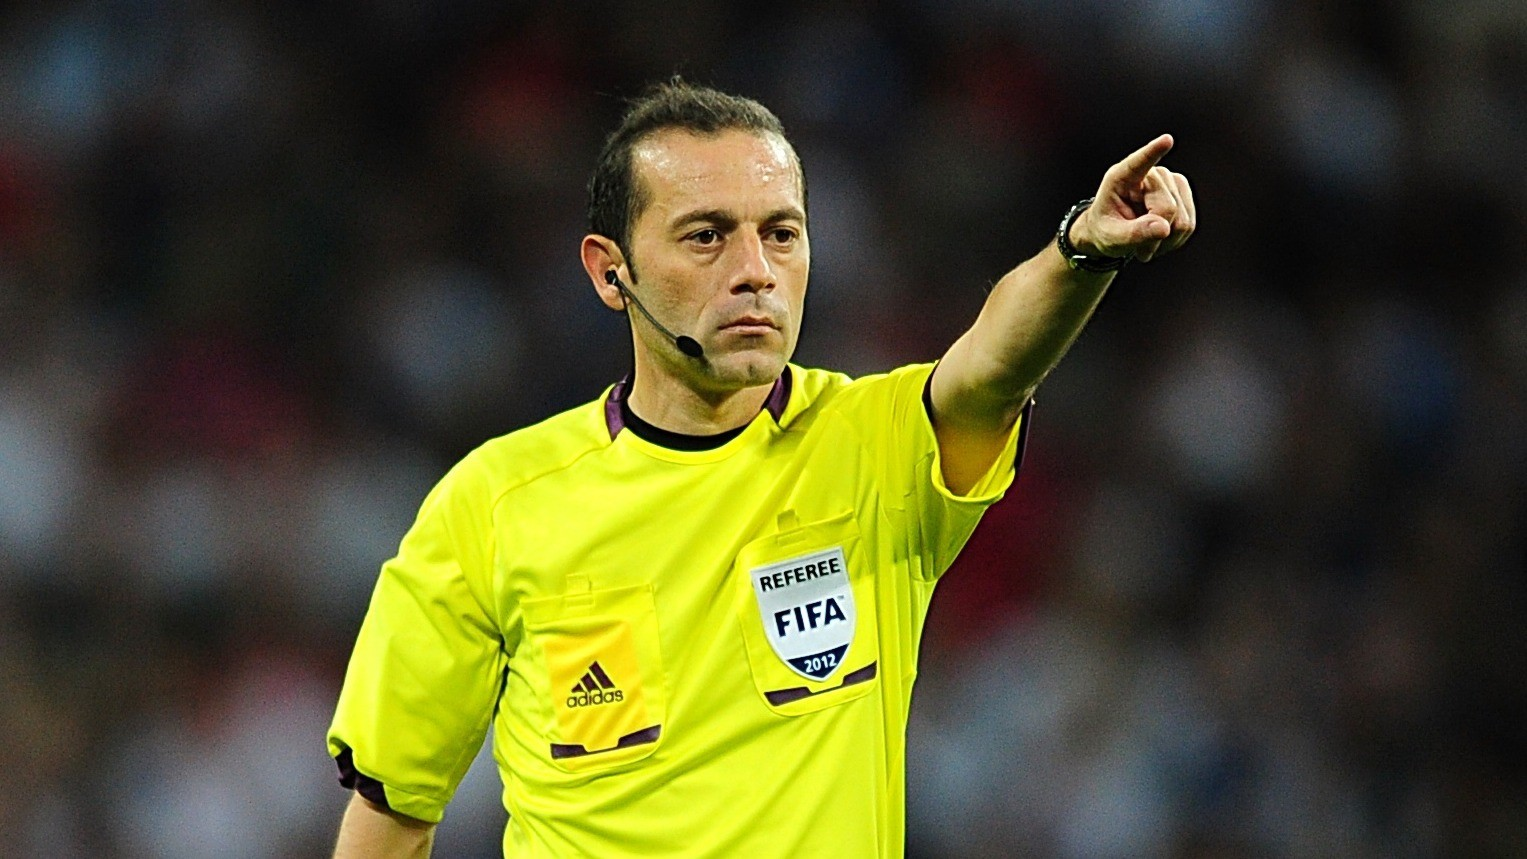 The referee of Derby match 'Cüneyt Çakır'